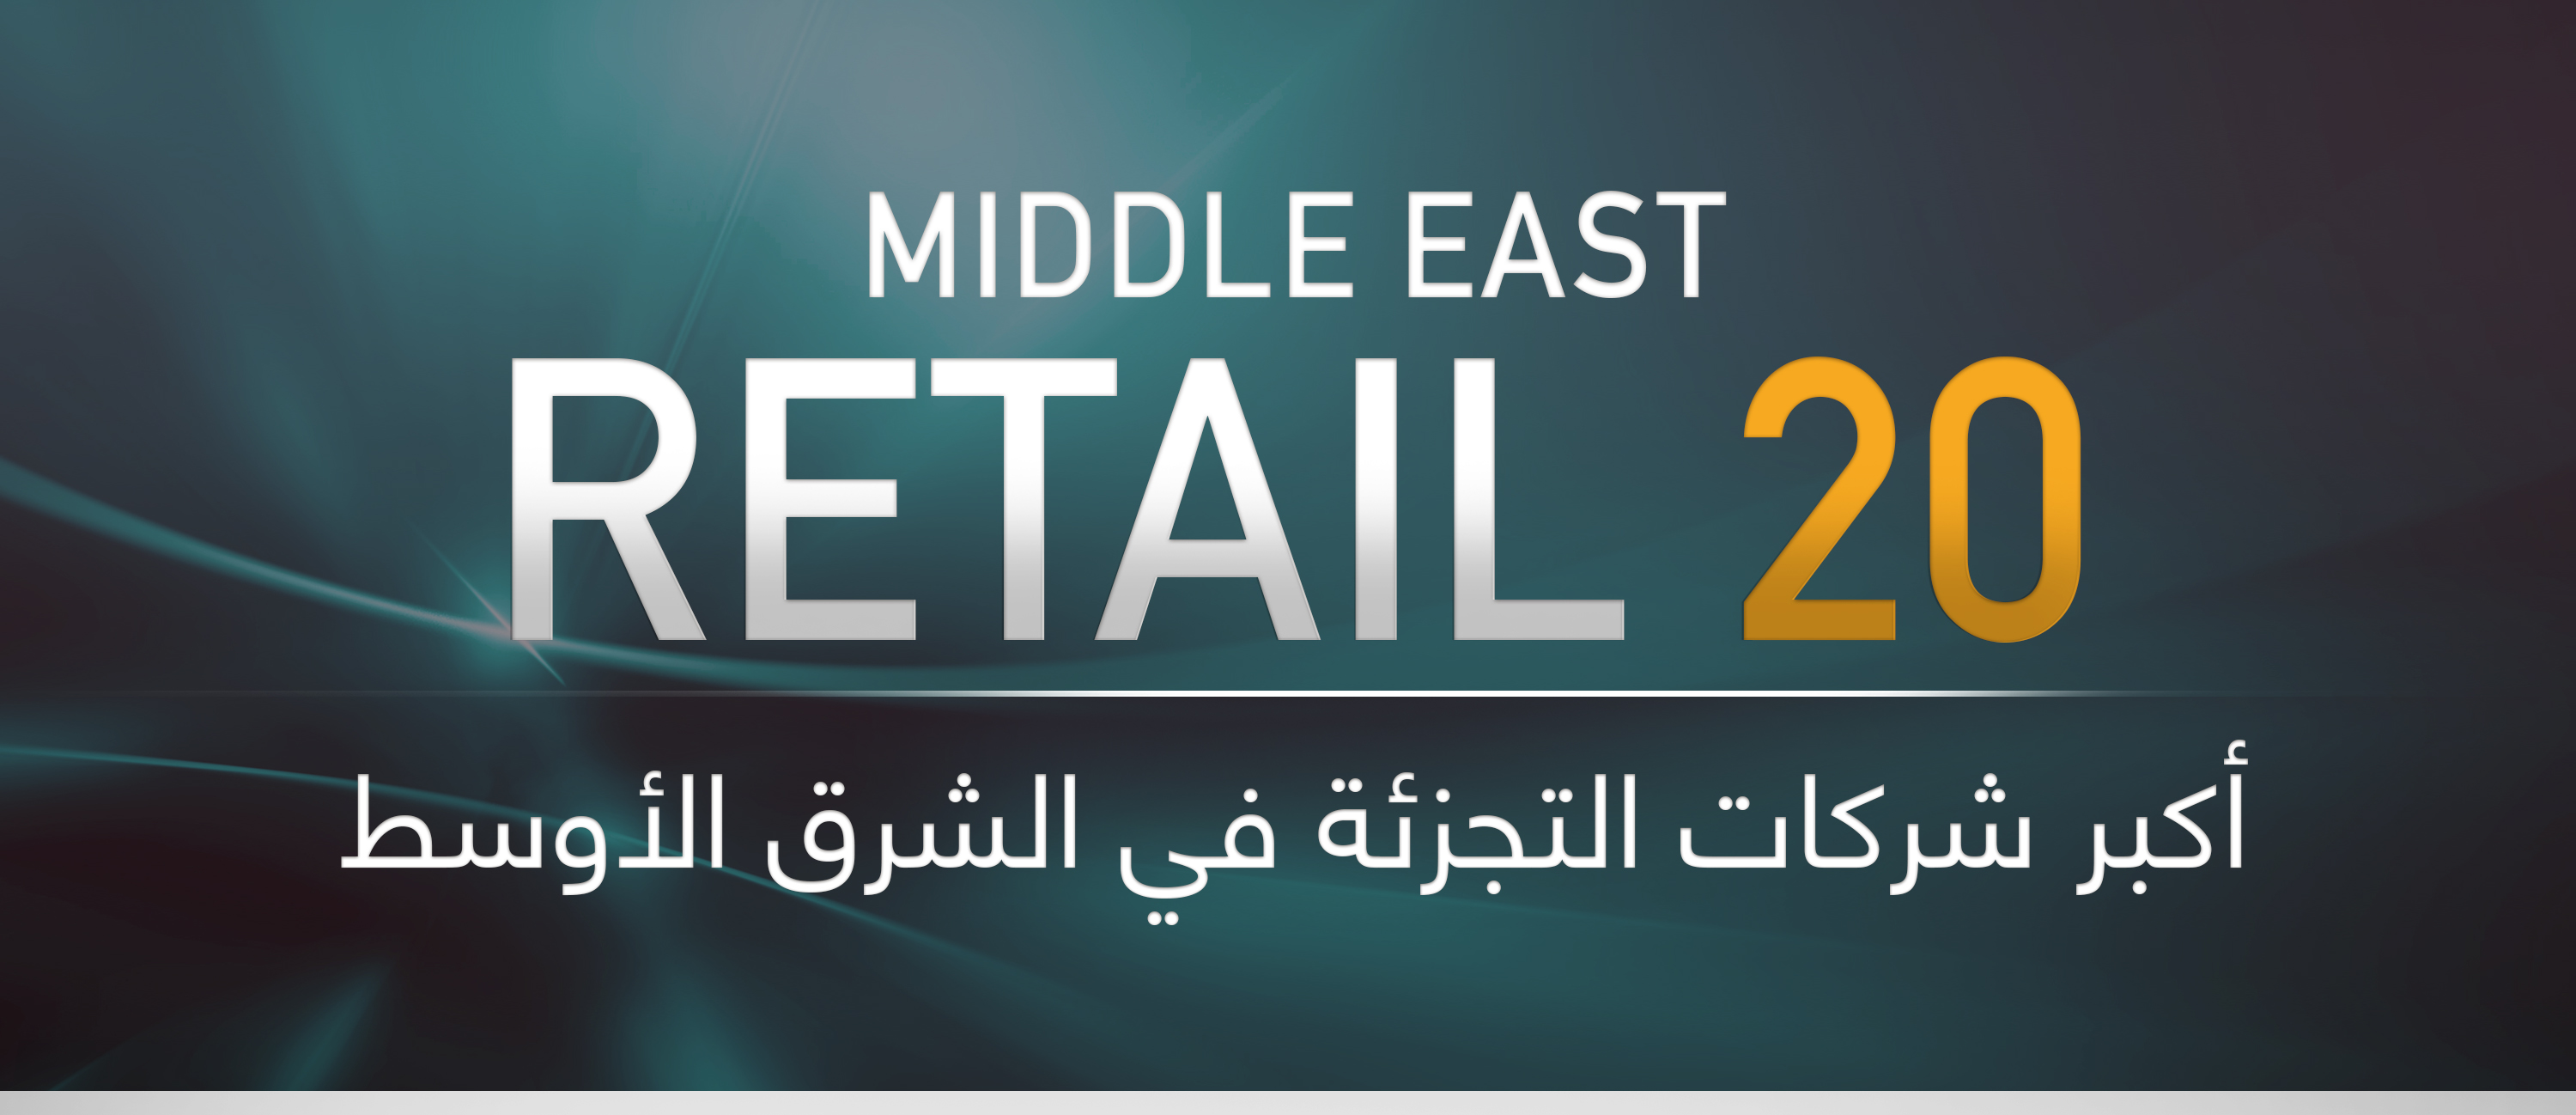 The Largest Retail Chains In The Middle East